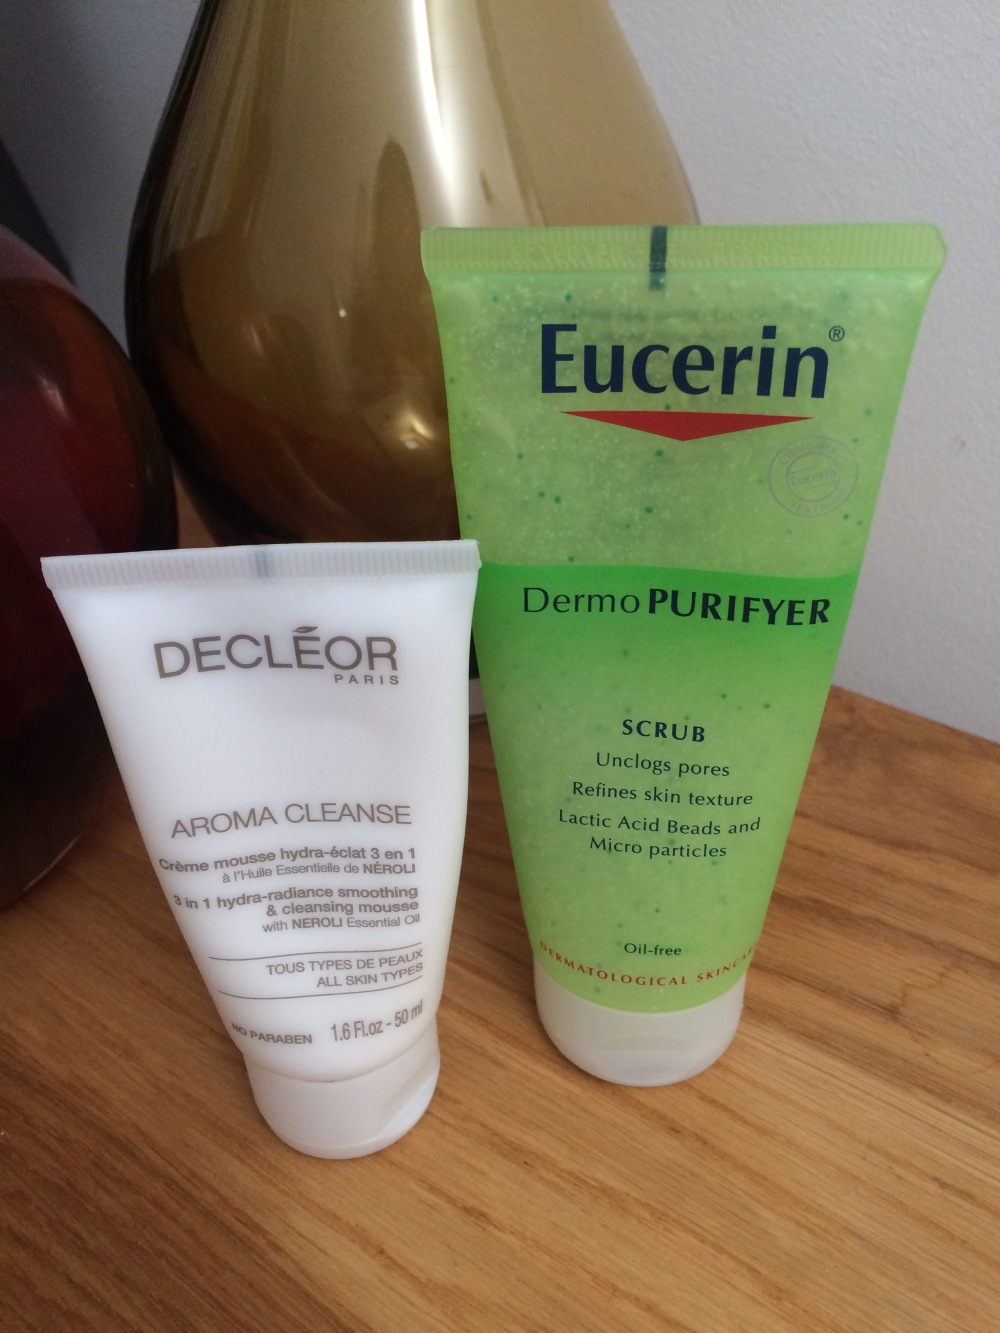 look-fantastic-my-skin-solutions-healthy-skin-box-oily-blemish-prone-skin-decleor-aromacleanse-eucerin-scrub